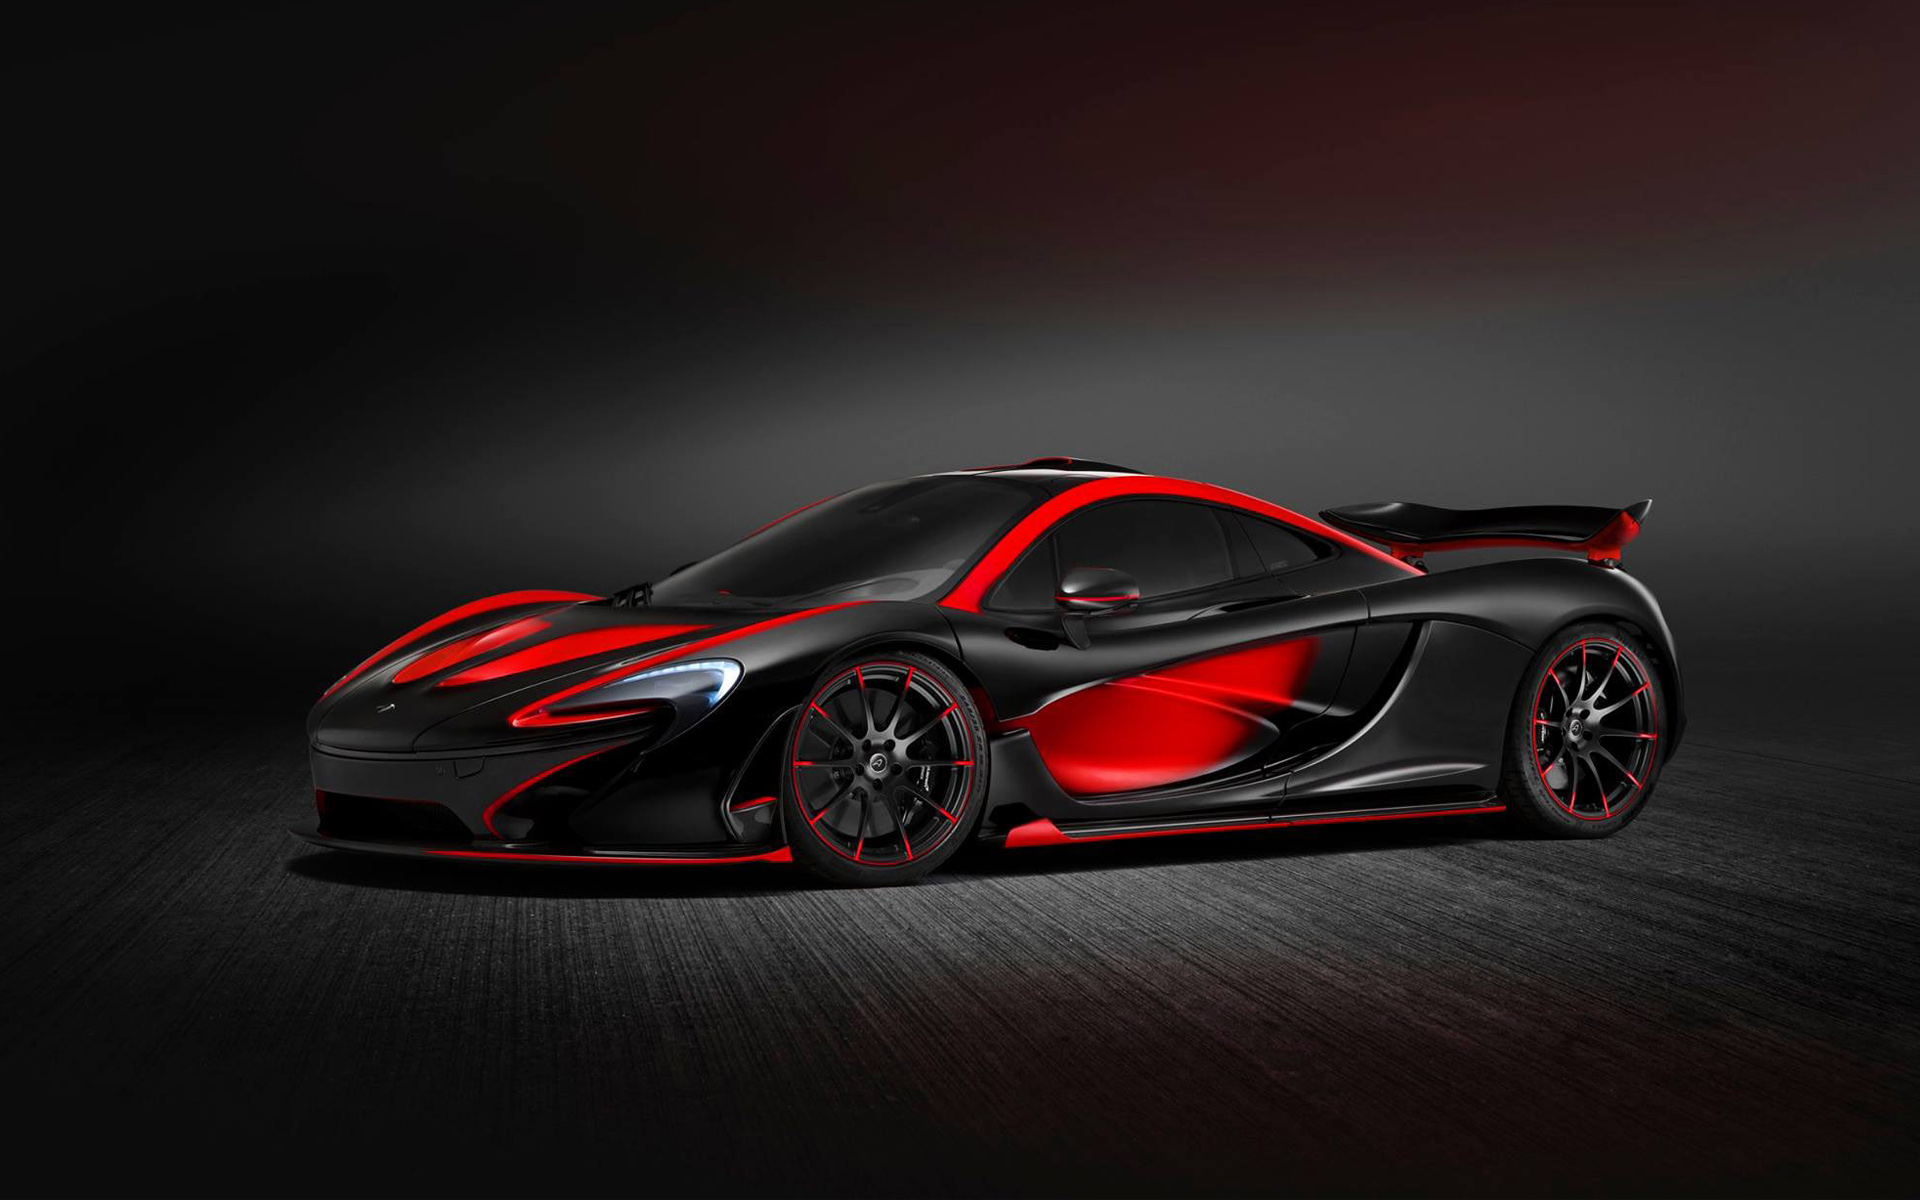 2015 Mclaren P1 Mclaren Special Operations 2 Wallpaper